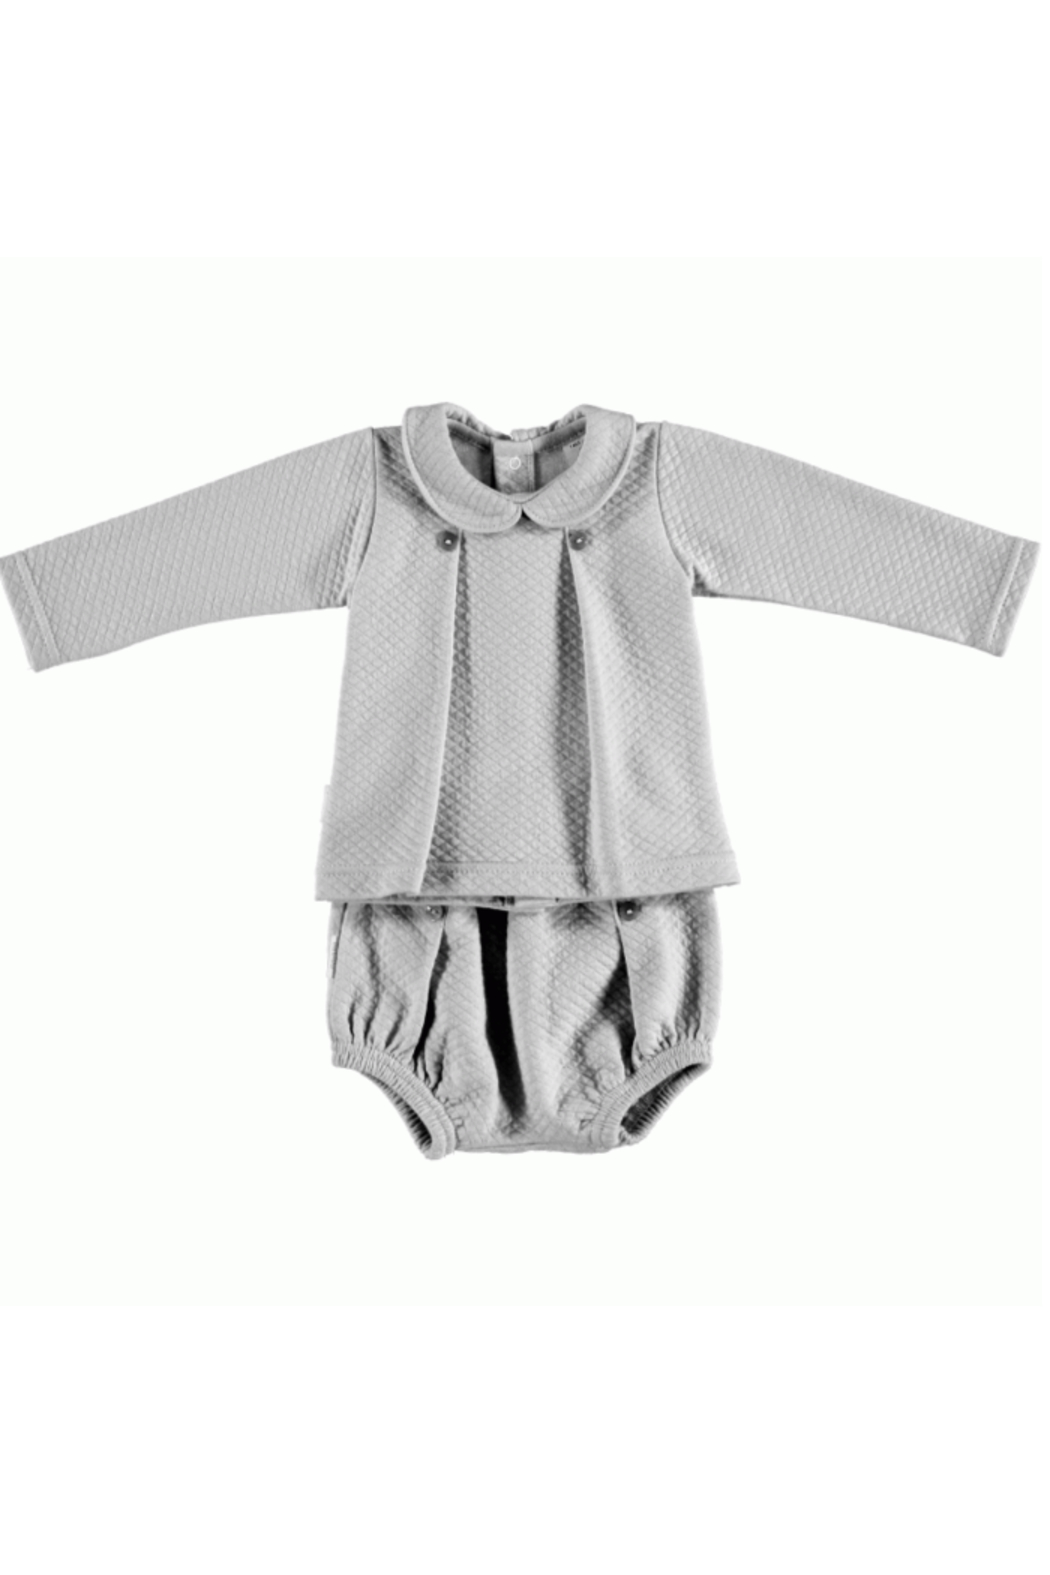 The Birds Nest LONDON SET W/ BOX PLEAT BABY COLLAR - GREY (6M) - Front Cropped Image